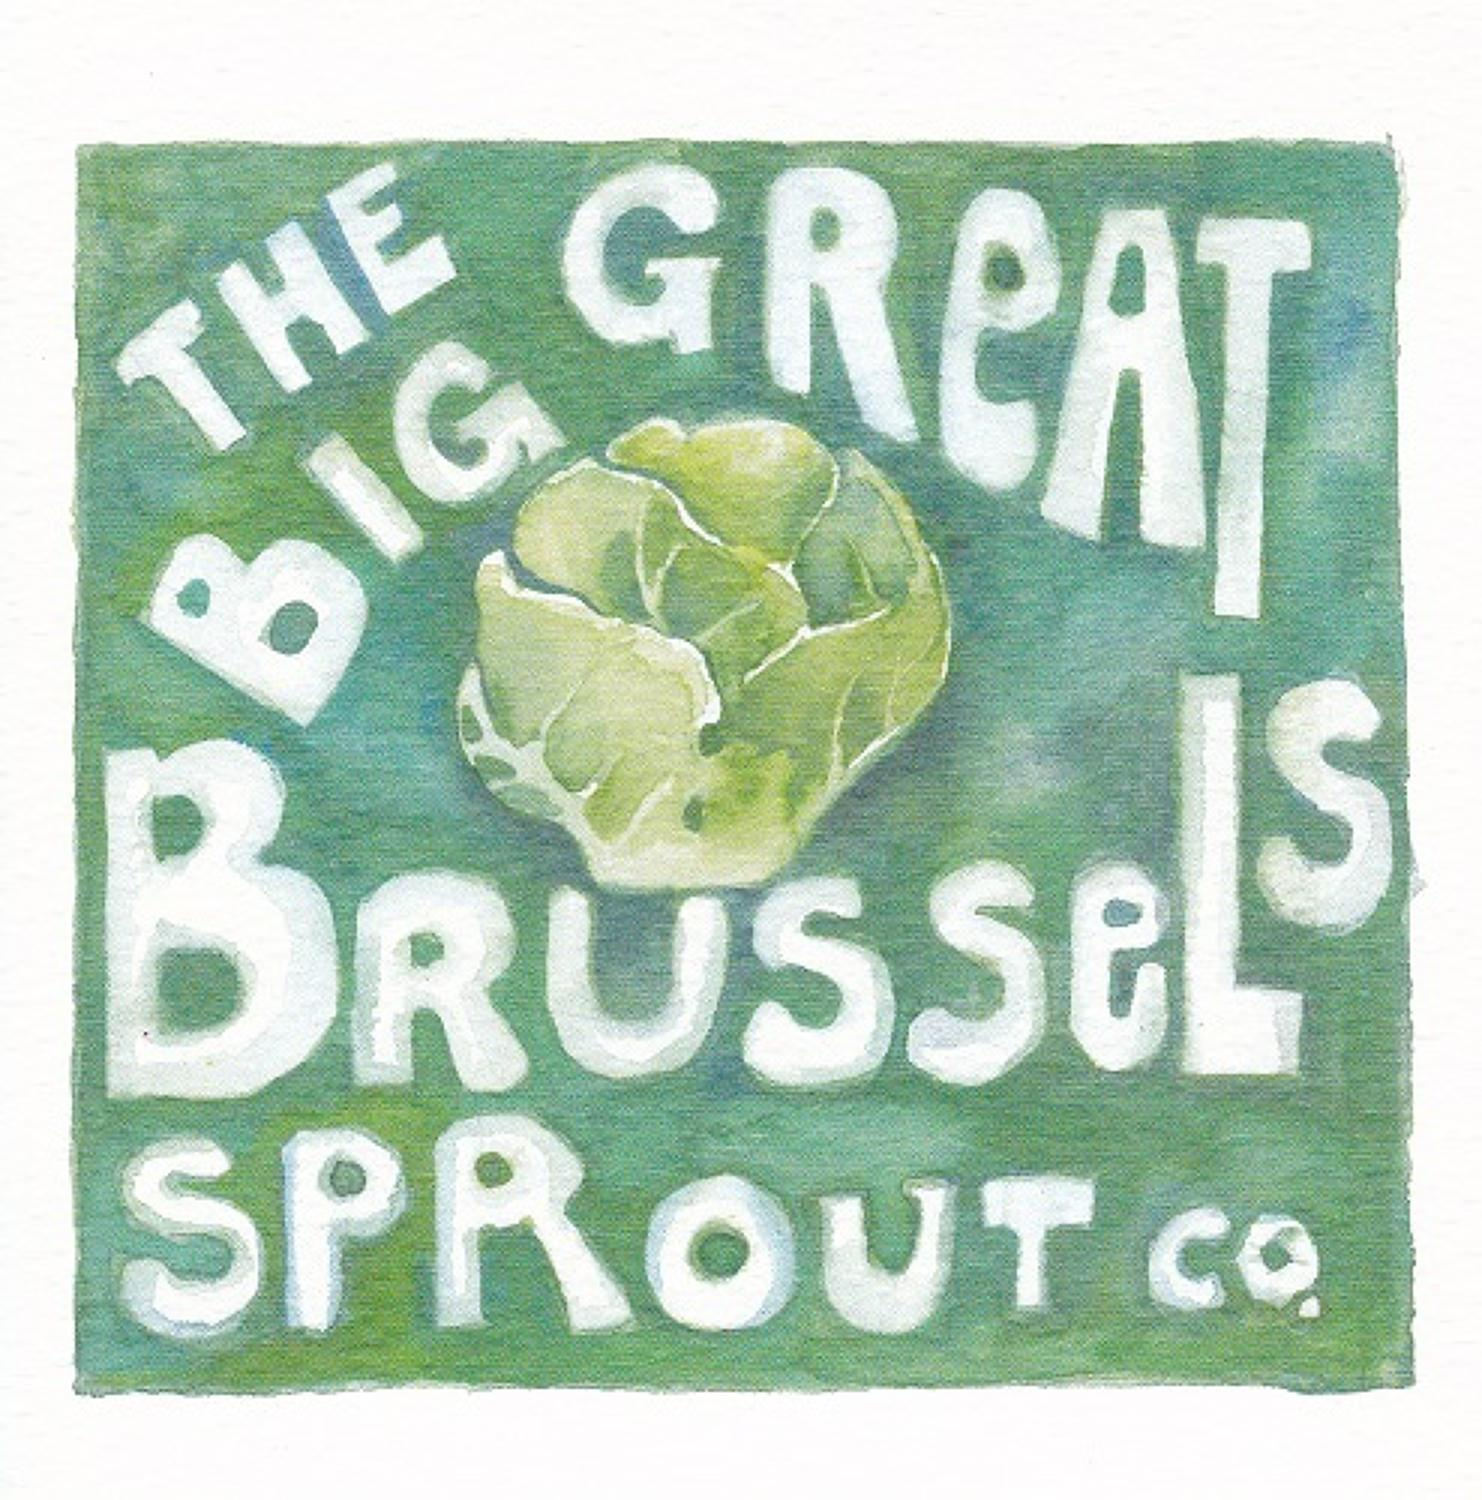 Great Big Sprout Co.